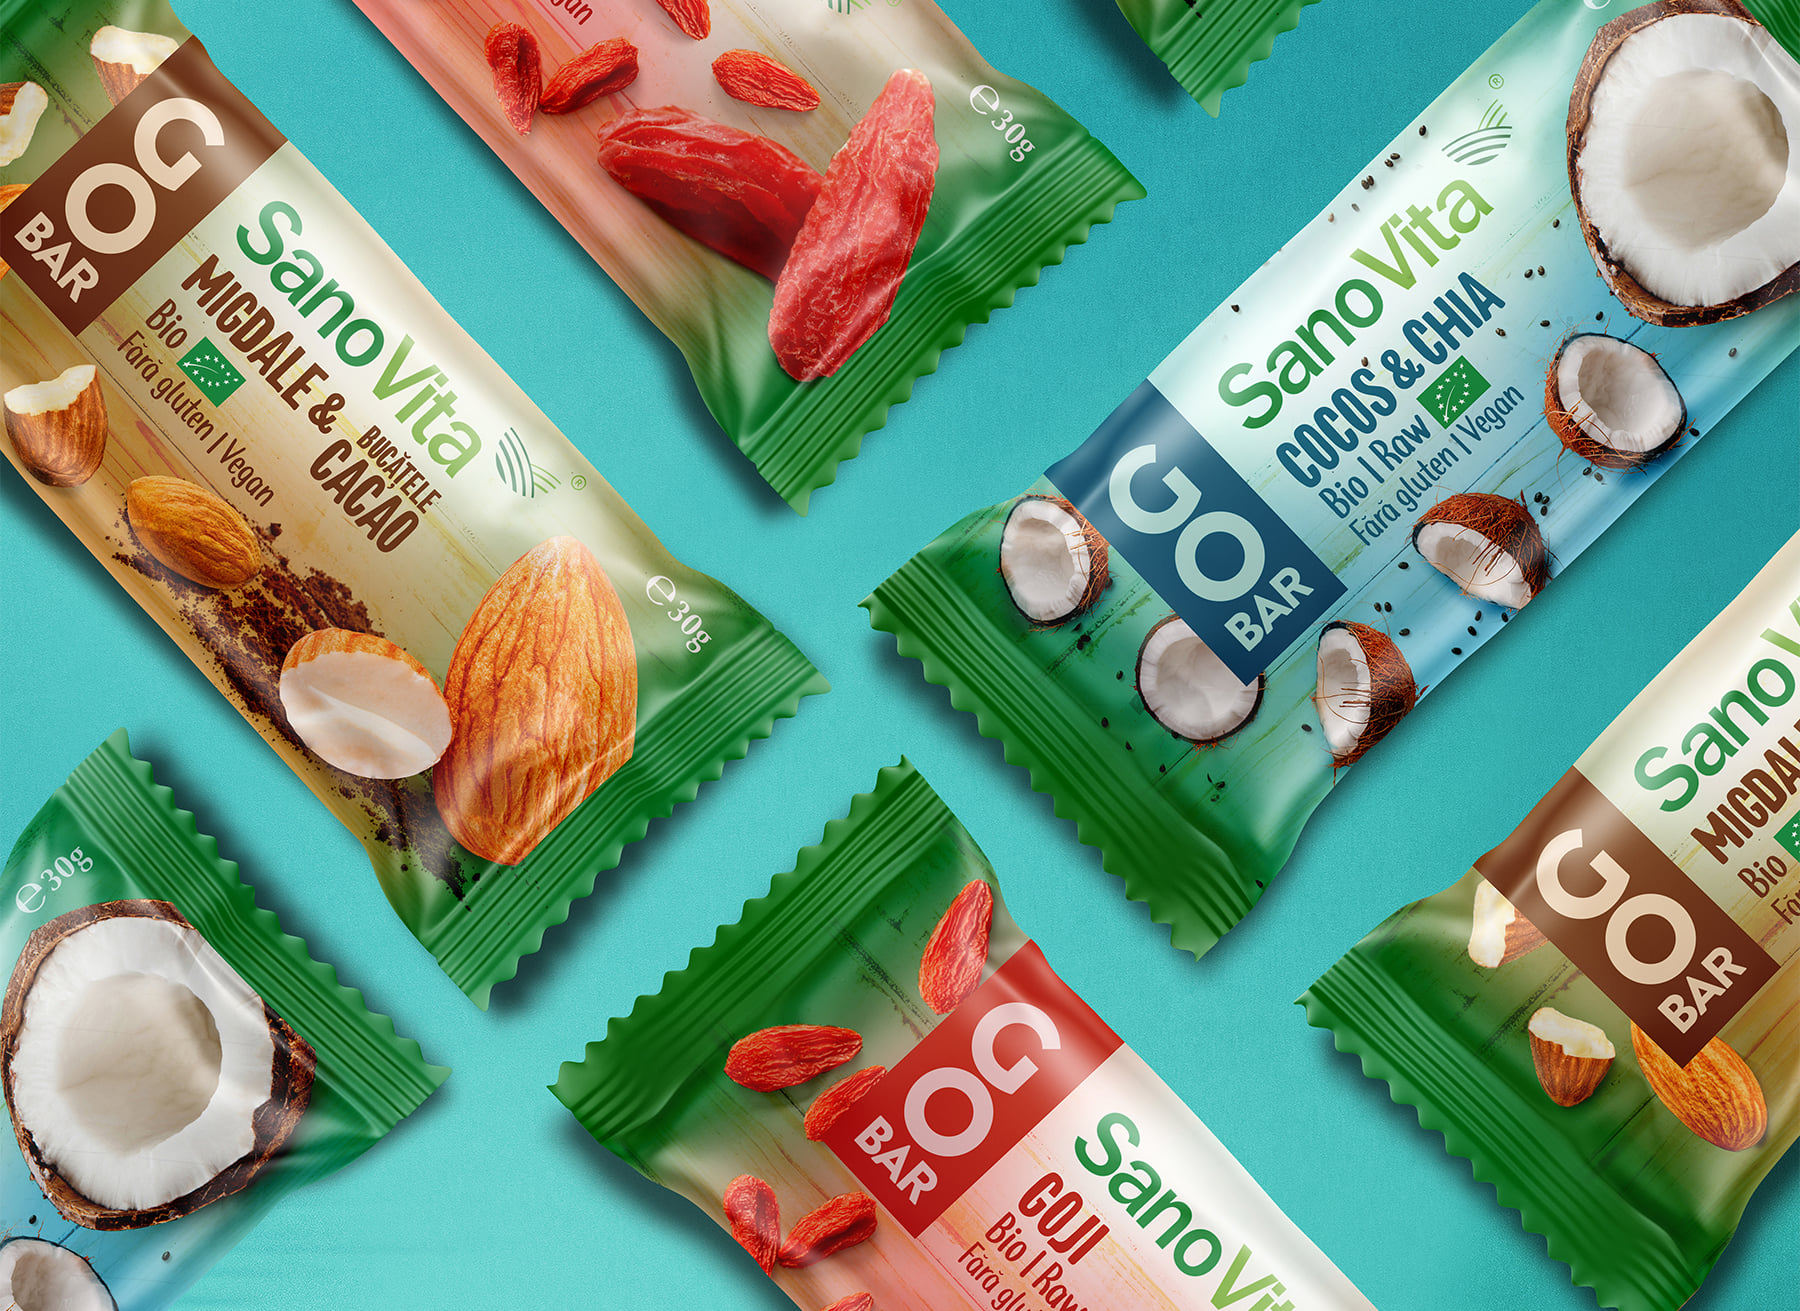 BroHouse Creates New Packaging Designs for a Tasty and Healthy Bars